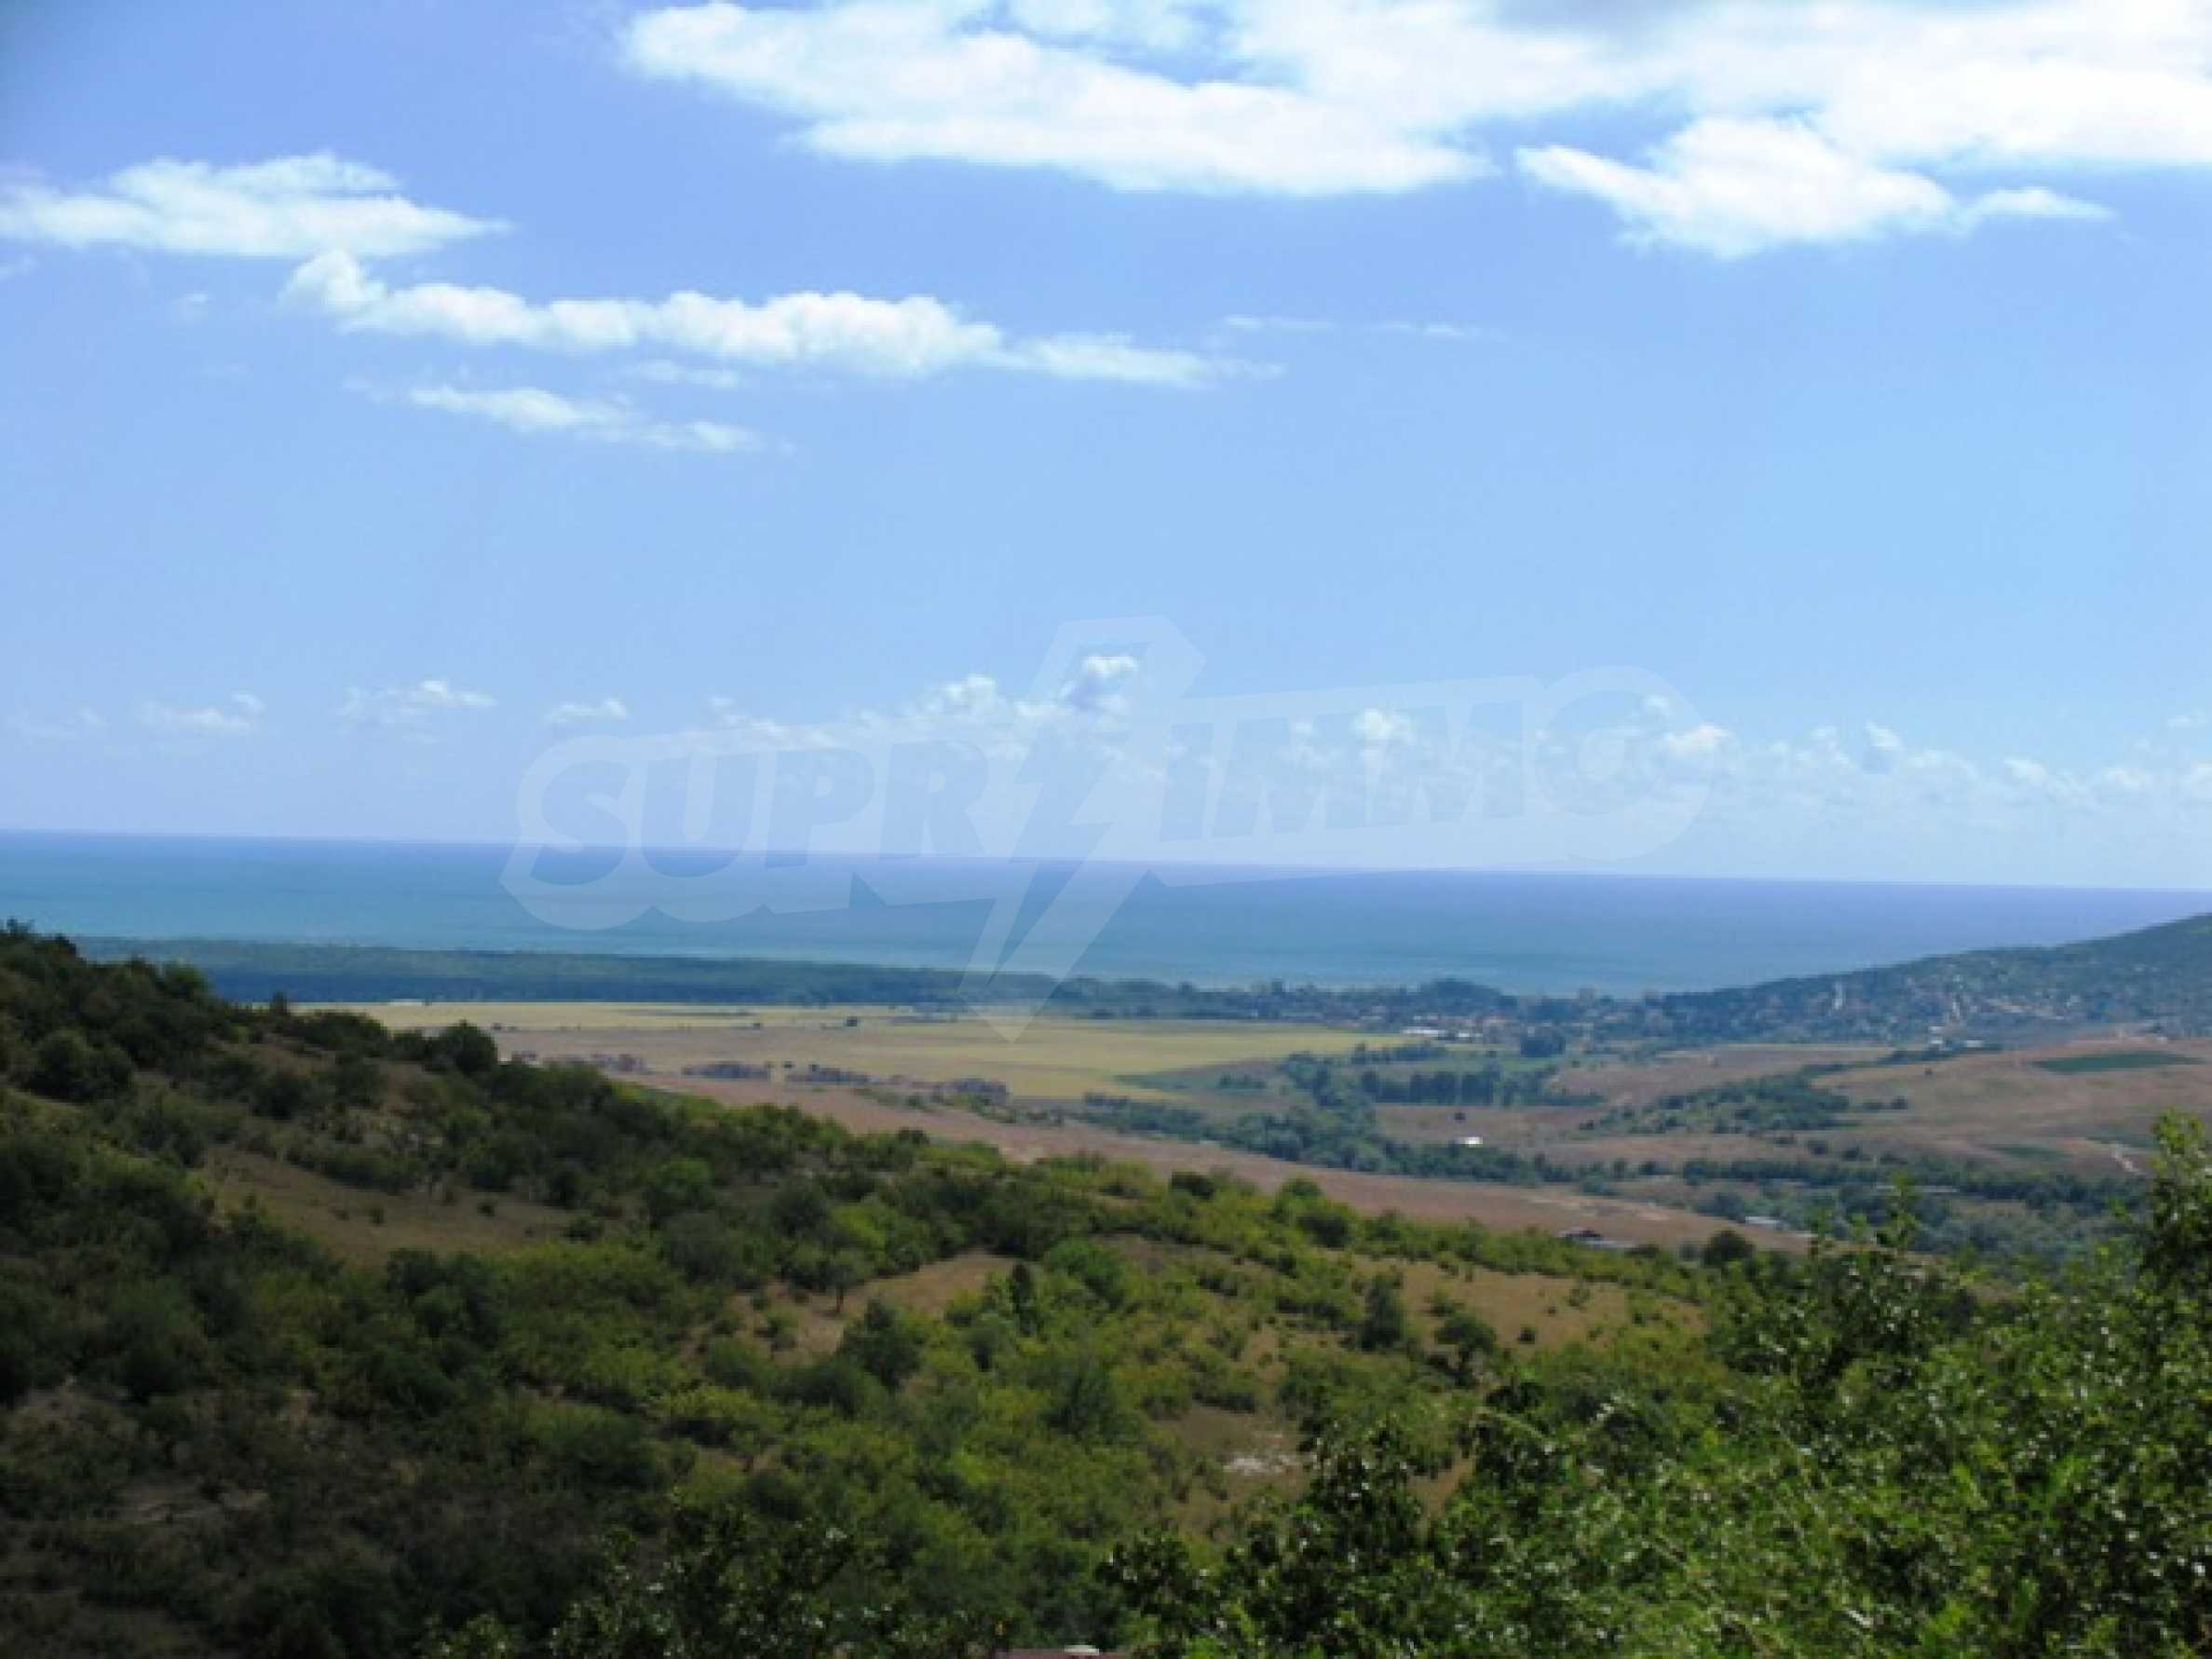 Excellent offer: plot of regulated land at a reasonable price and amazing sea view